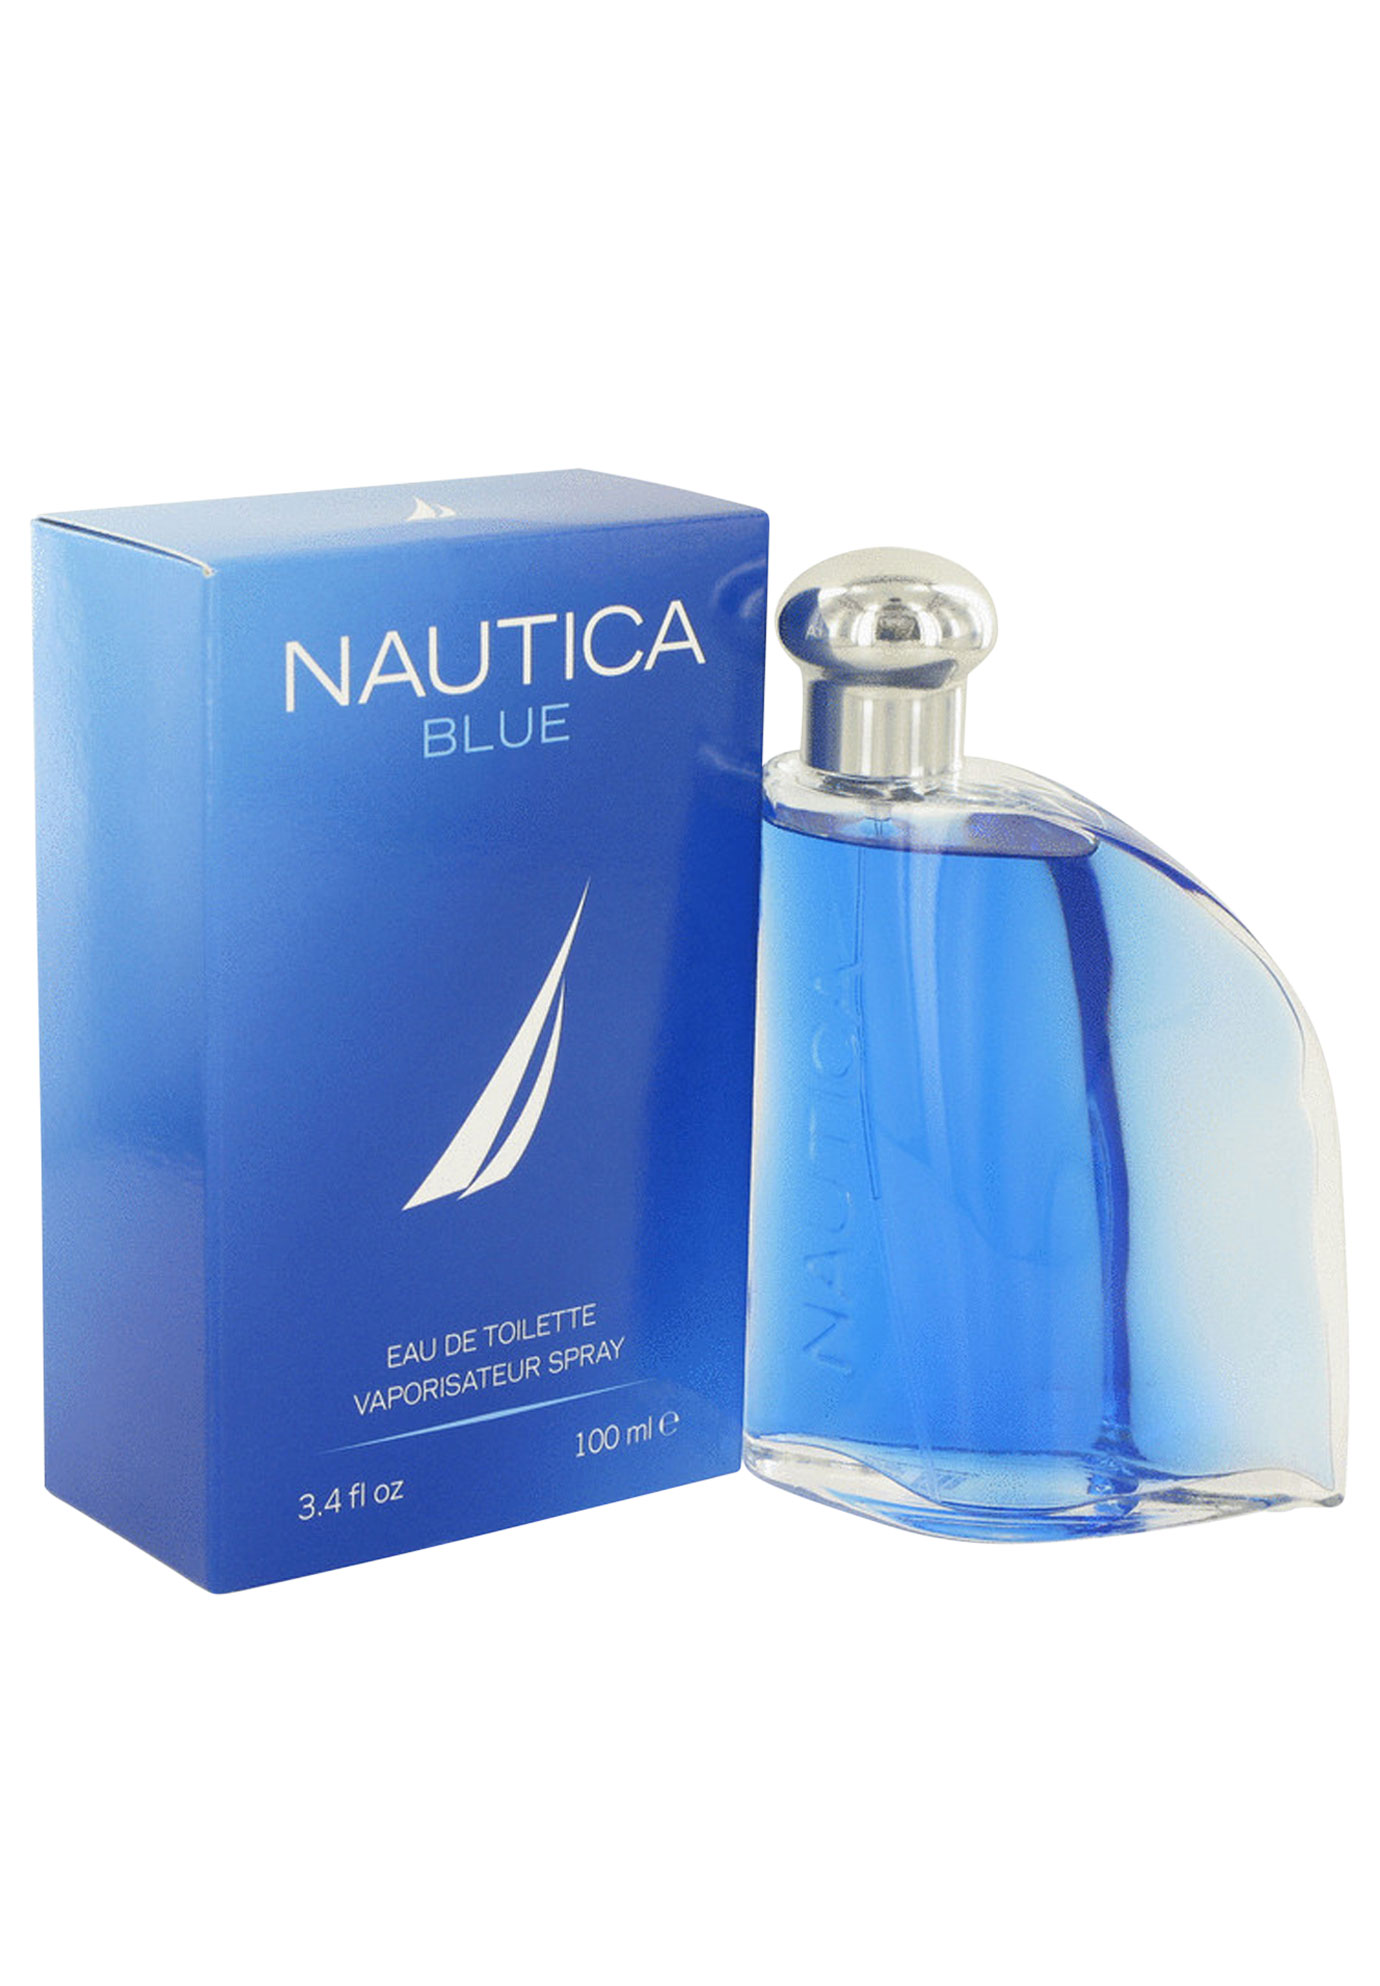 Nautica Blue Eau de Toilette 3.4 oz by Nautica®, MULTI